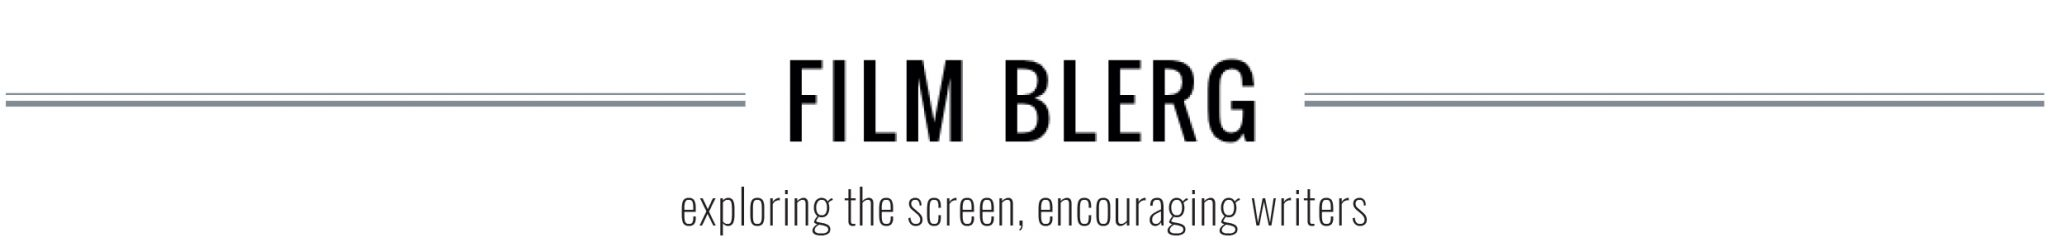 Film Blerg - Exploring the screen, encouraging writers